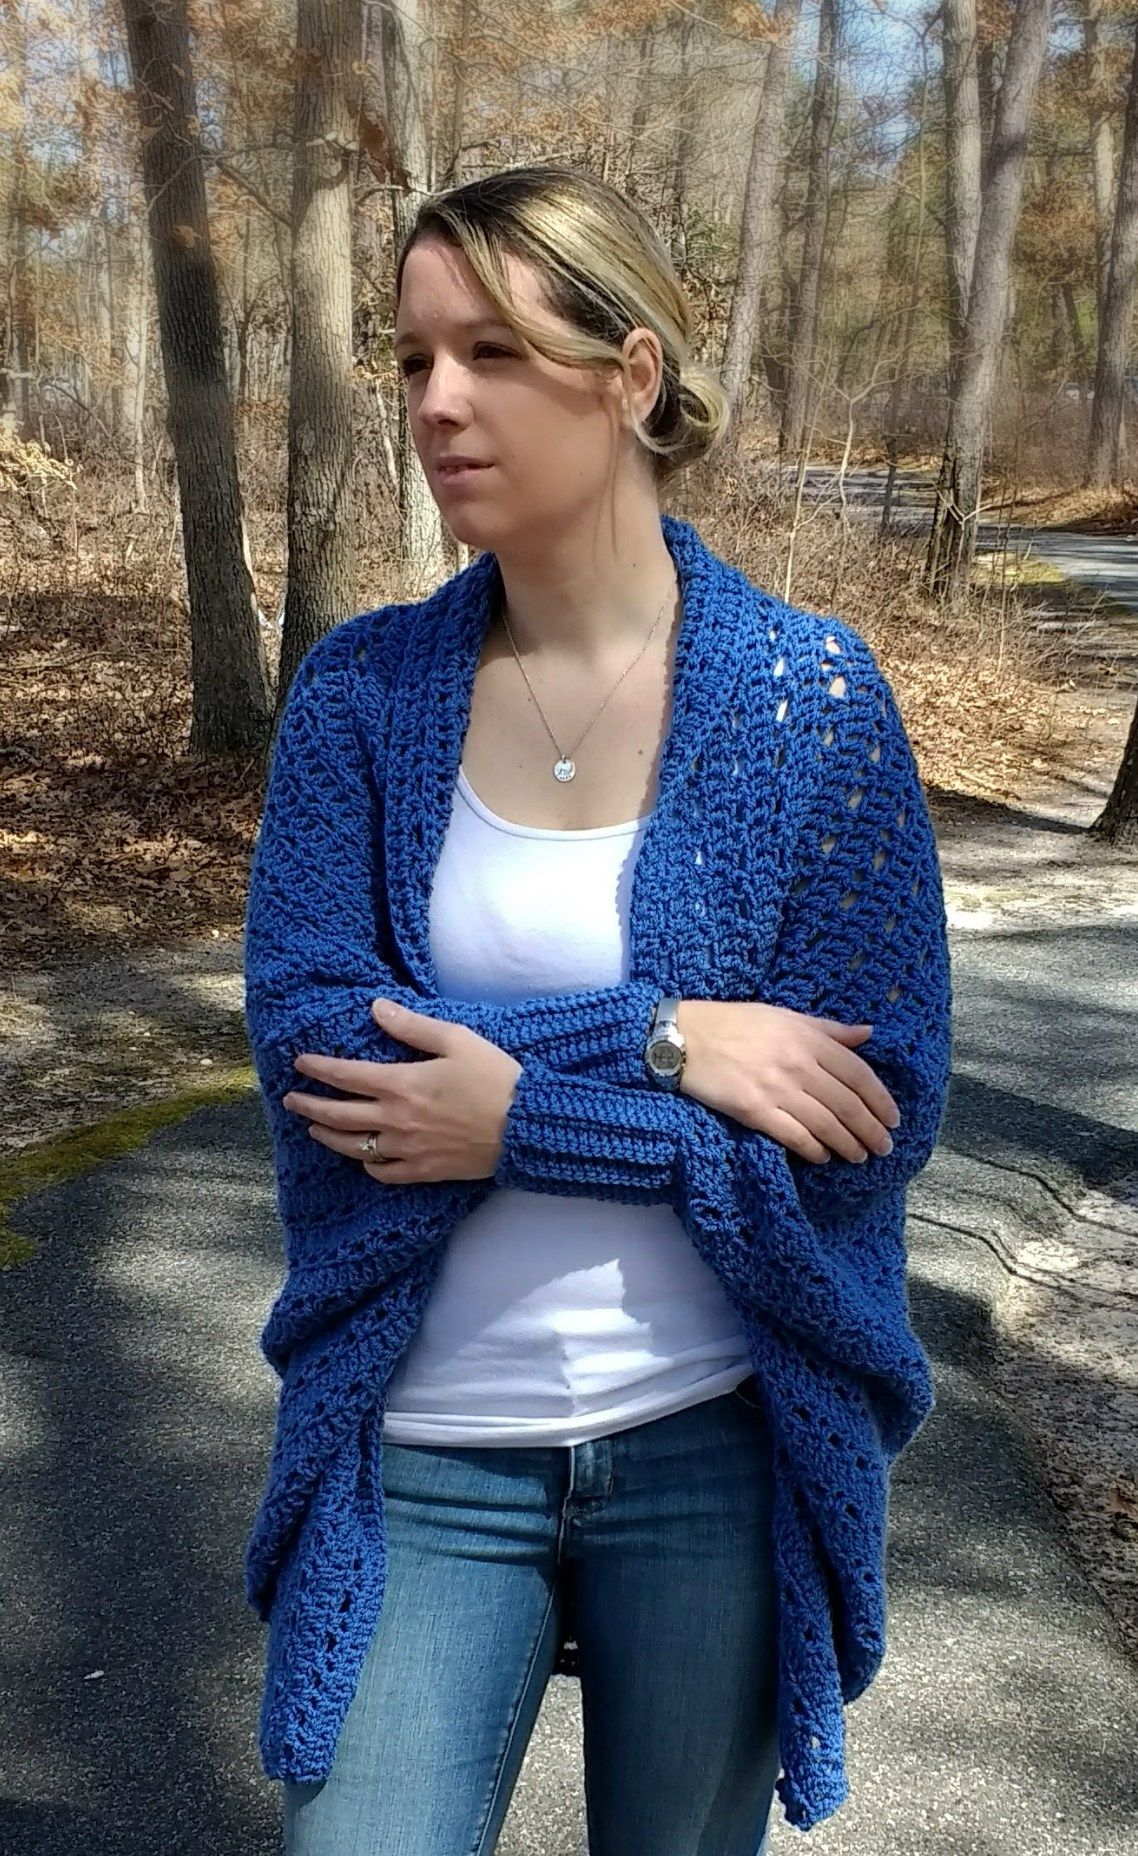 f7b632dc7bbf0c Read my full review on Crafty s kit of the Carleton Cocoon Sweater by Right  Brain Crochet.